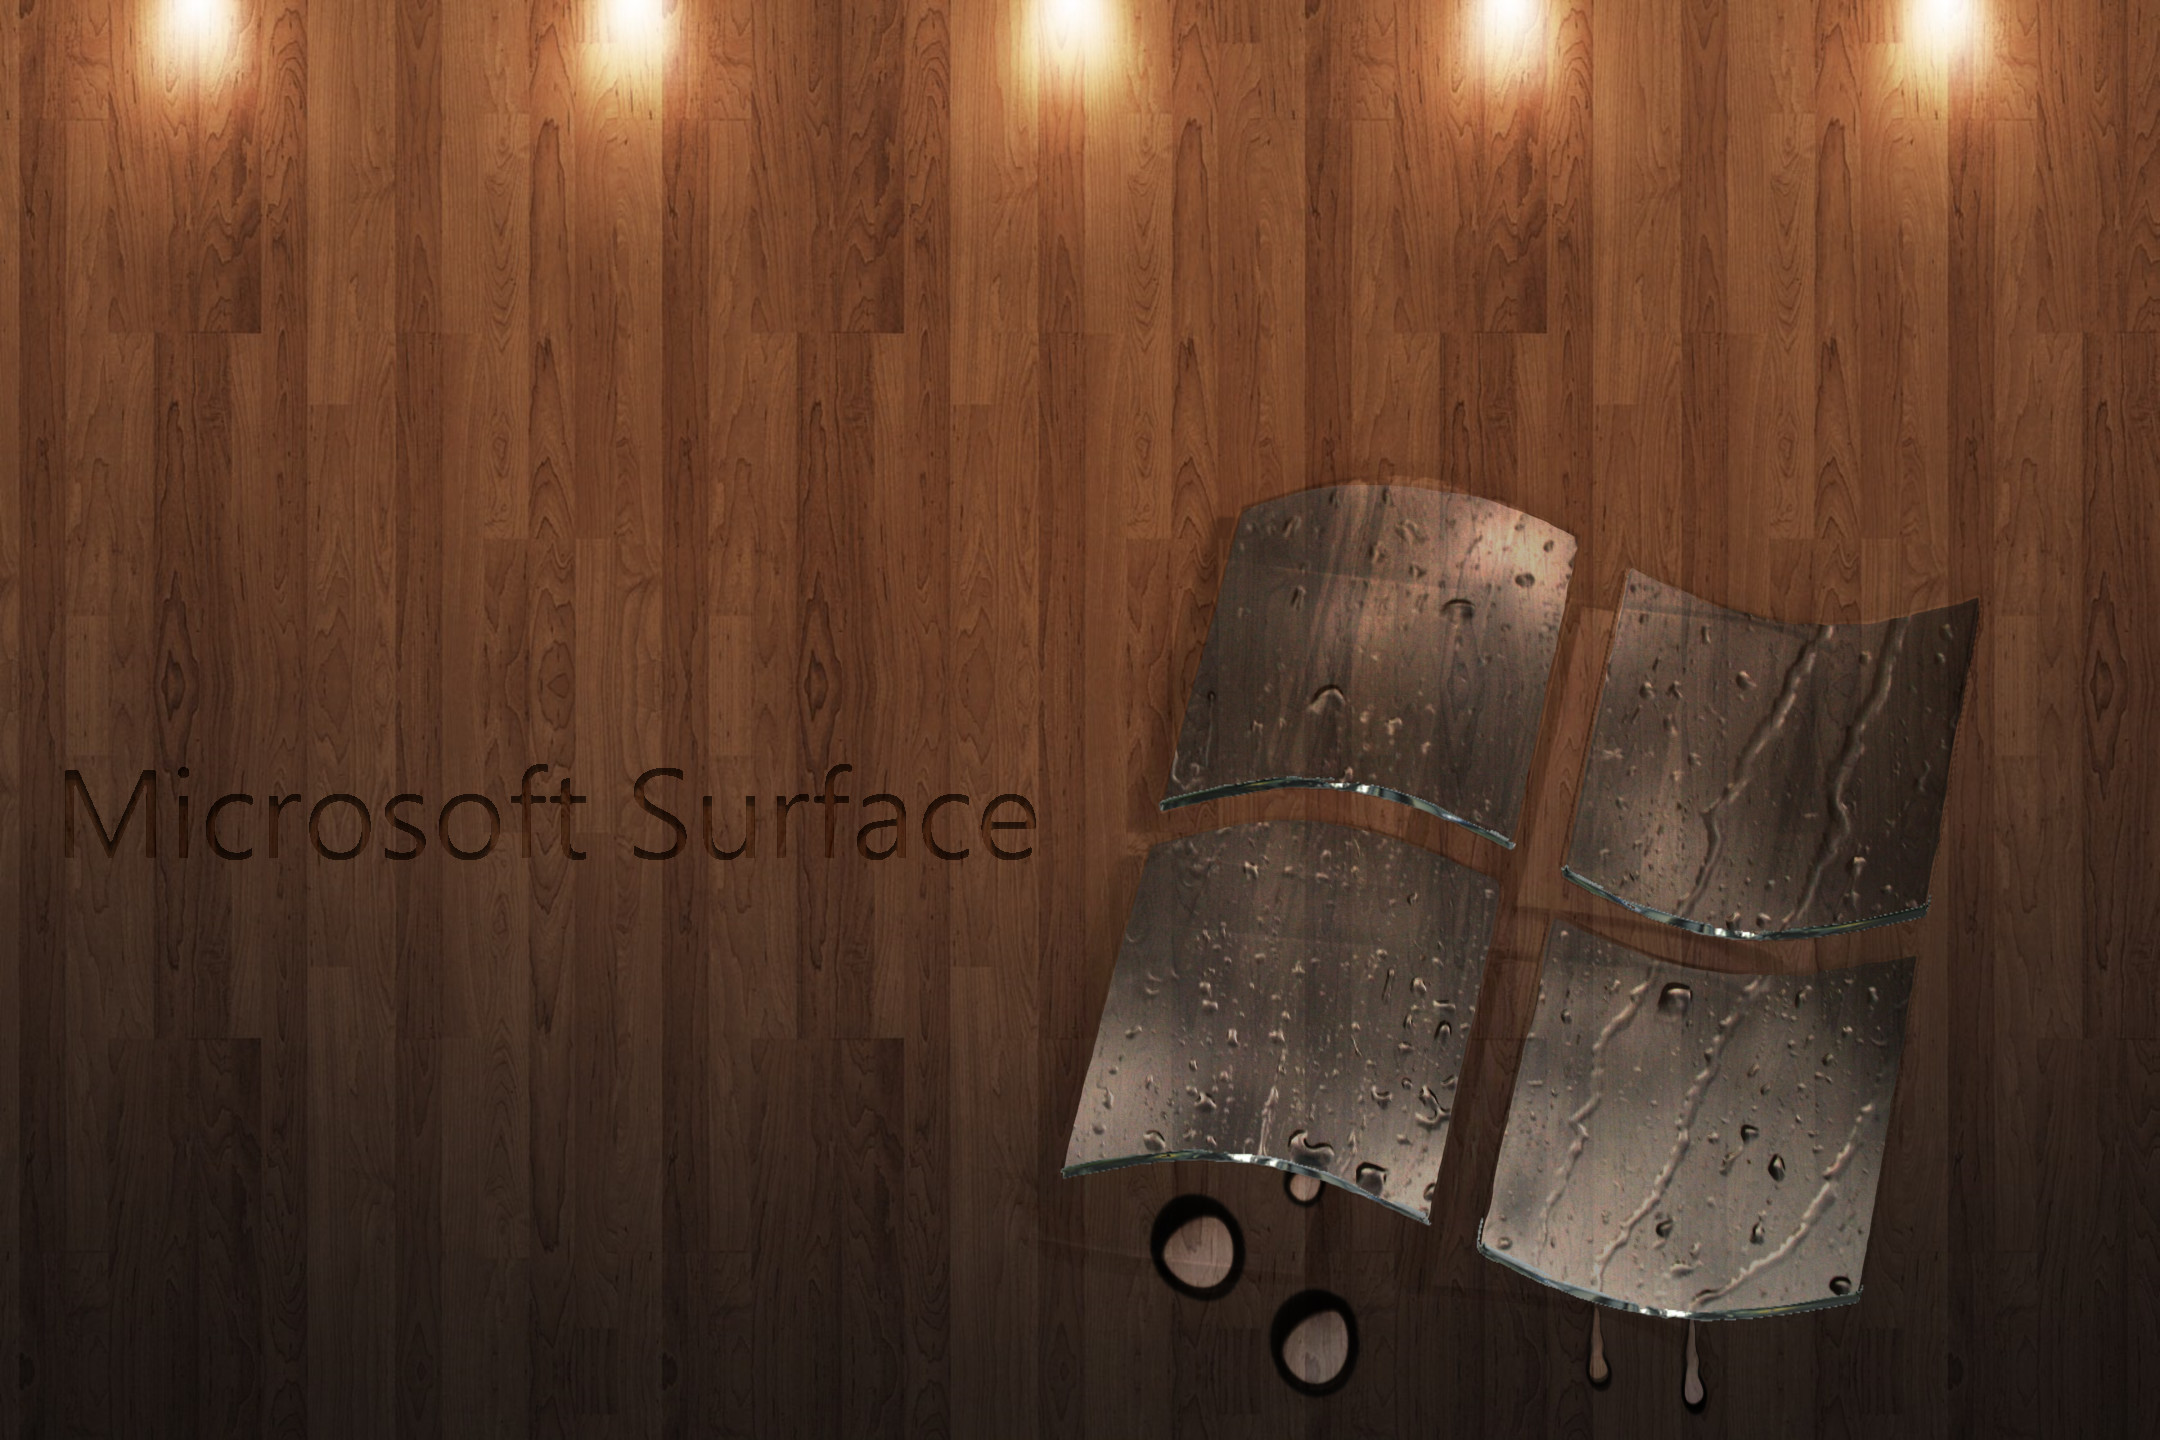 Surface Pro3_windows_glass_logo_wooden_floor.png